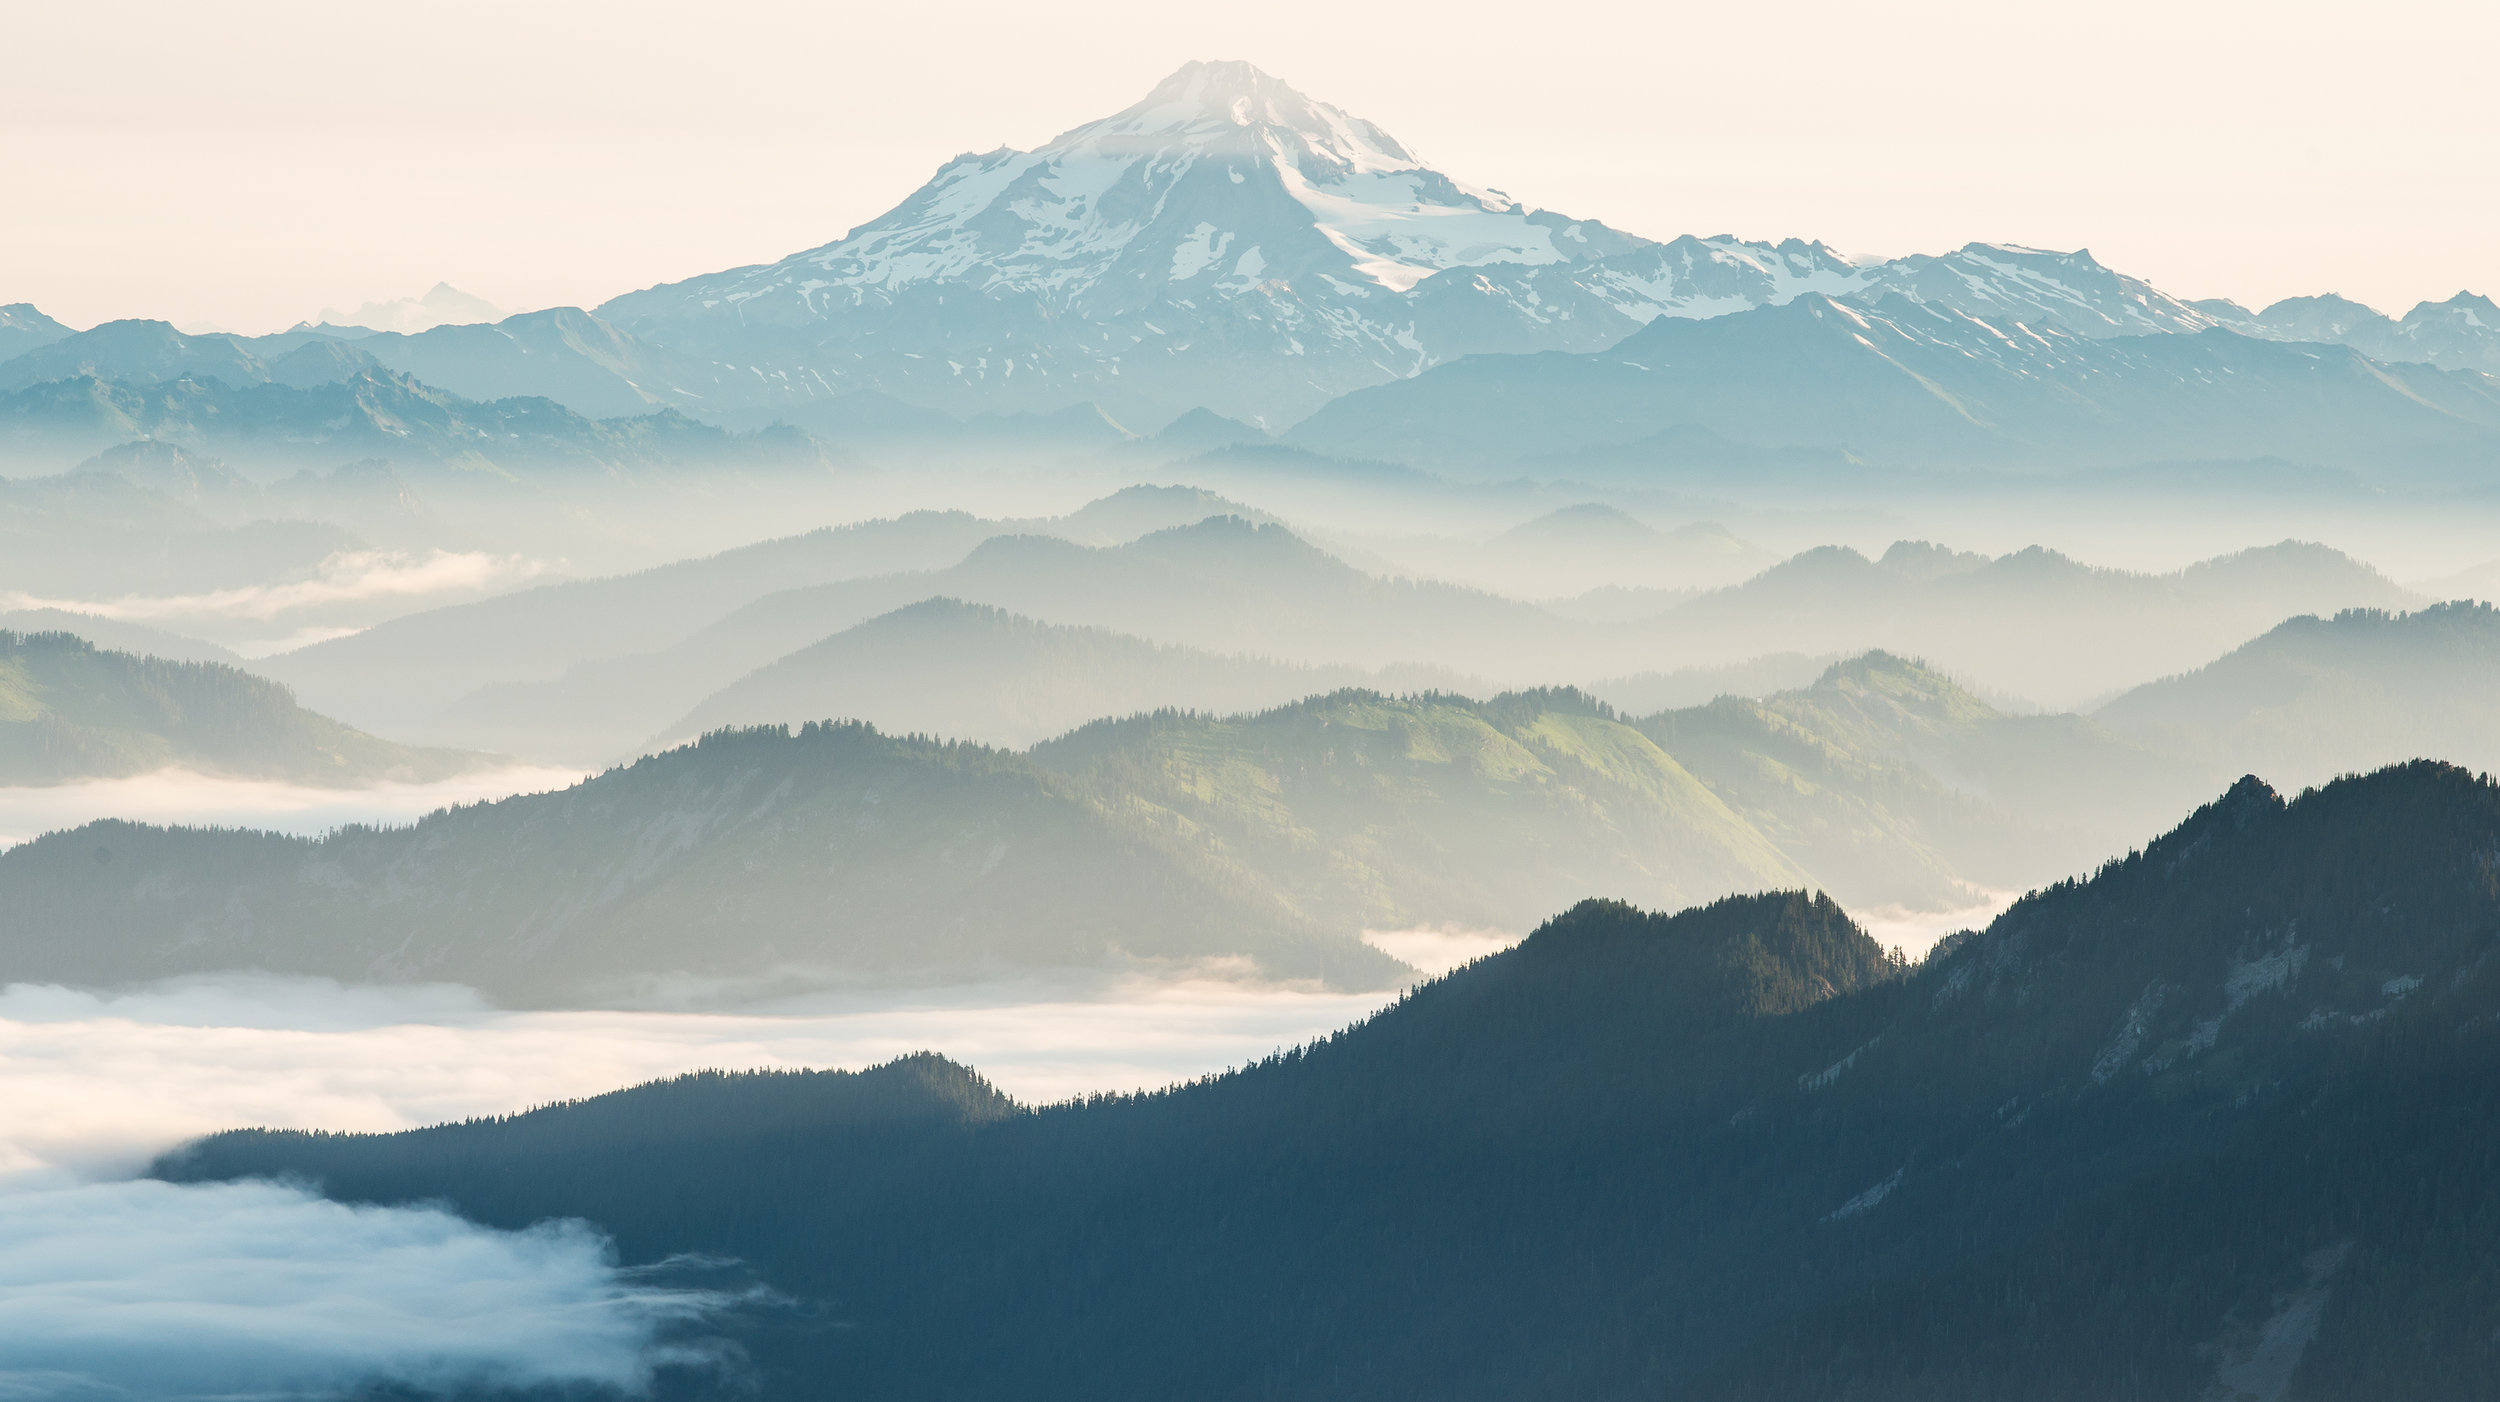 Glacier Peak rising up over a sea of clouds.